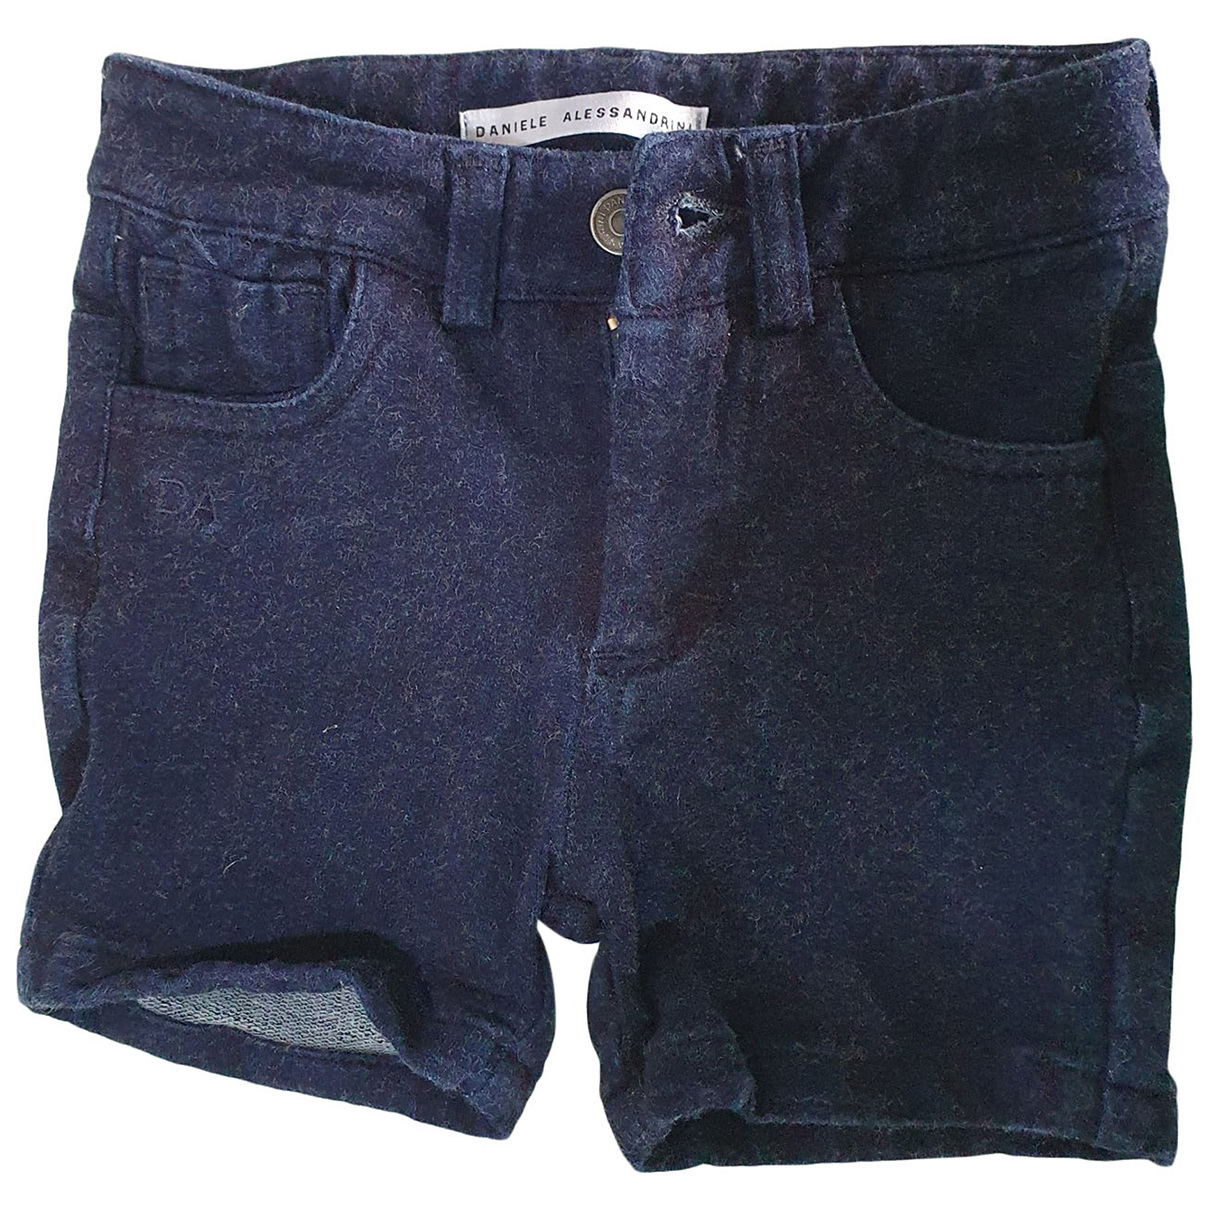 Daniele Alessandrini N Blue Denim - Jeans Shorts for Kids 6 months - up to 67cm FR